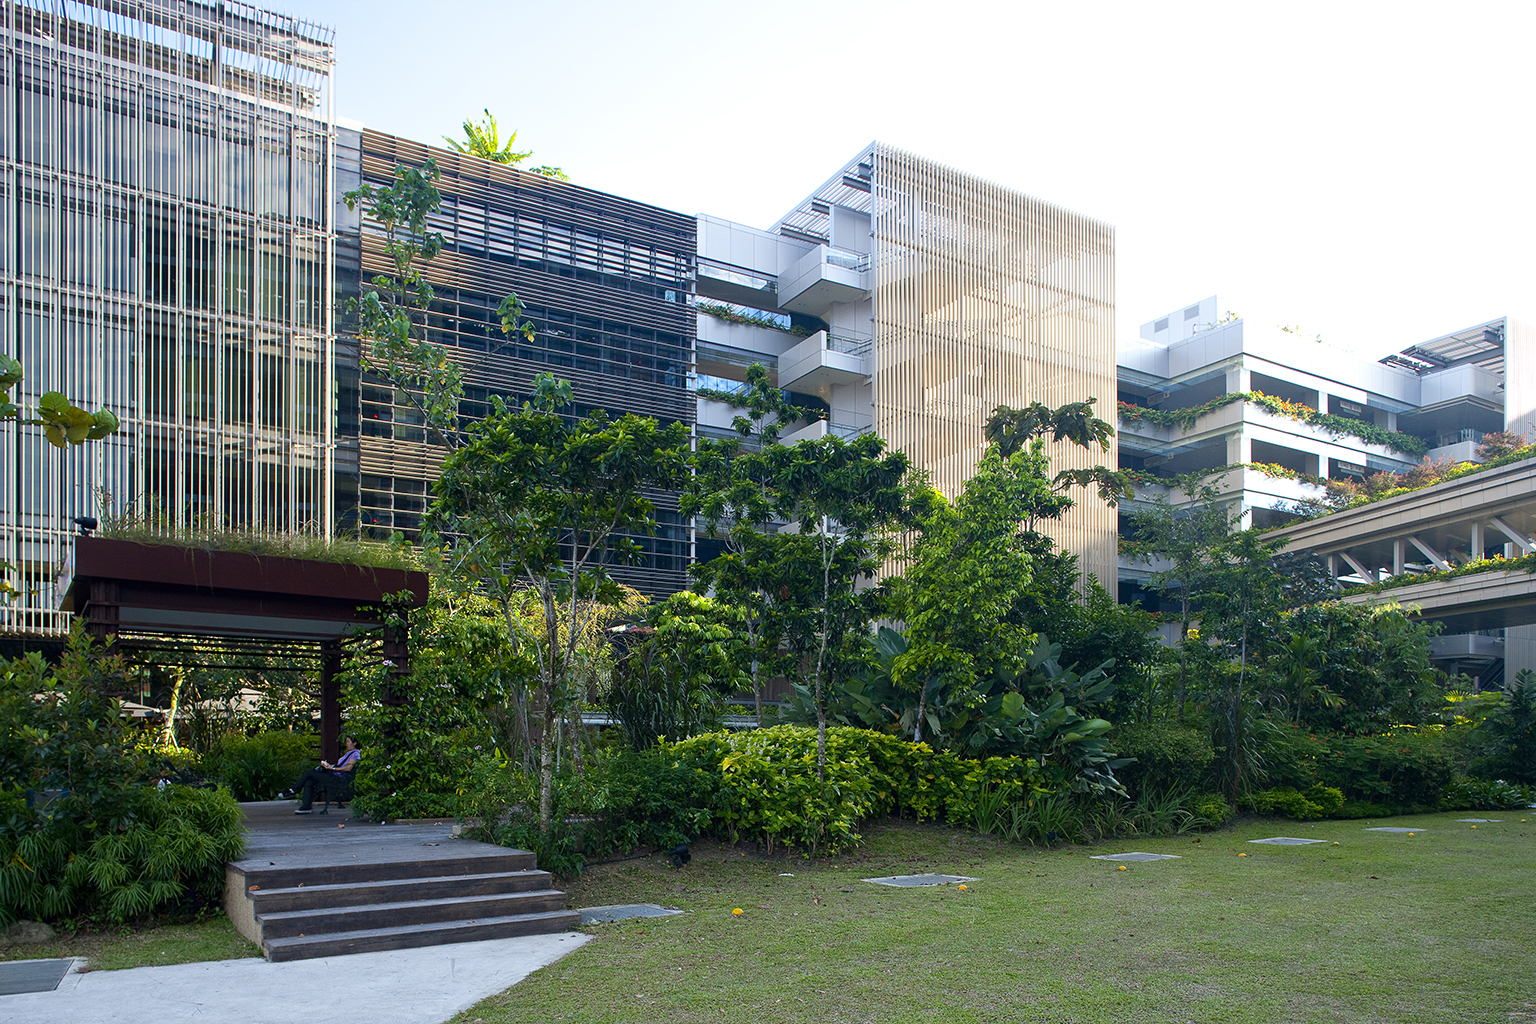 FLICKR/Jui-Yong Sim - lush greenery surrounds Khoo Teck Puat Hospital in Singapore, January 15, 2012.